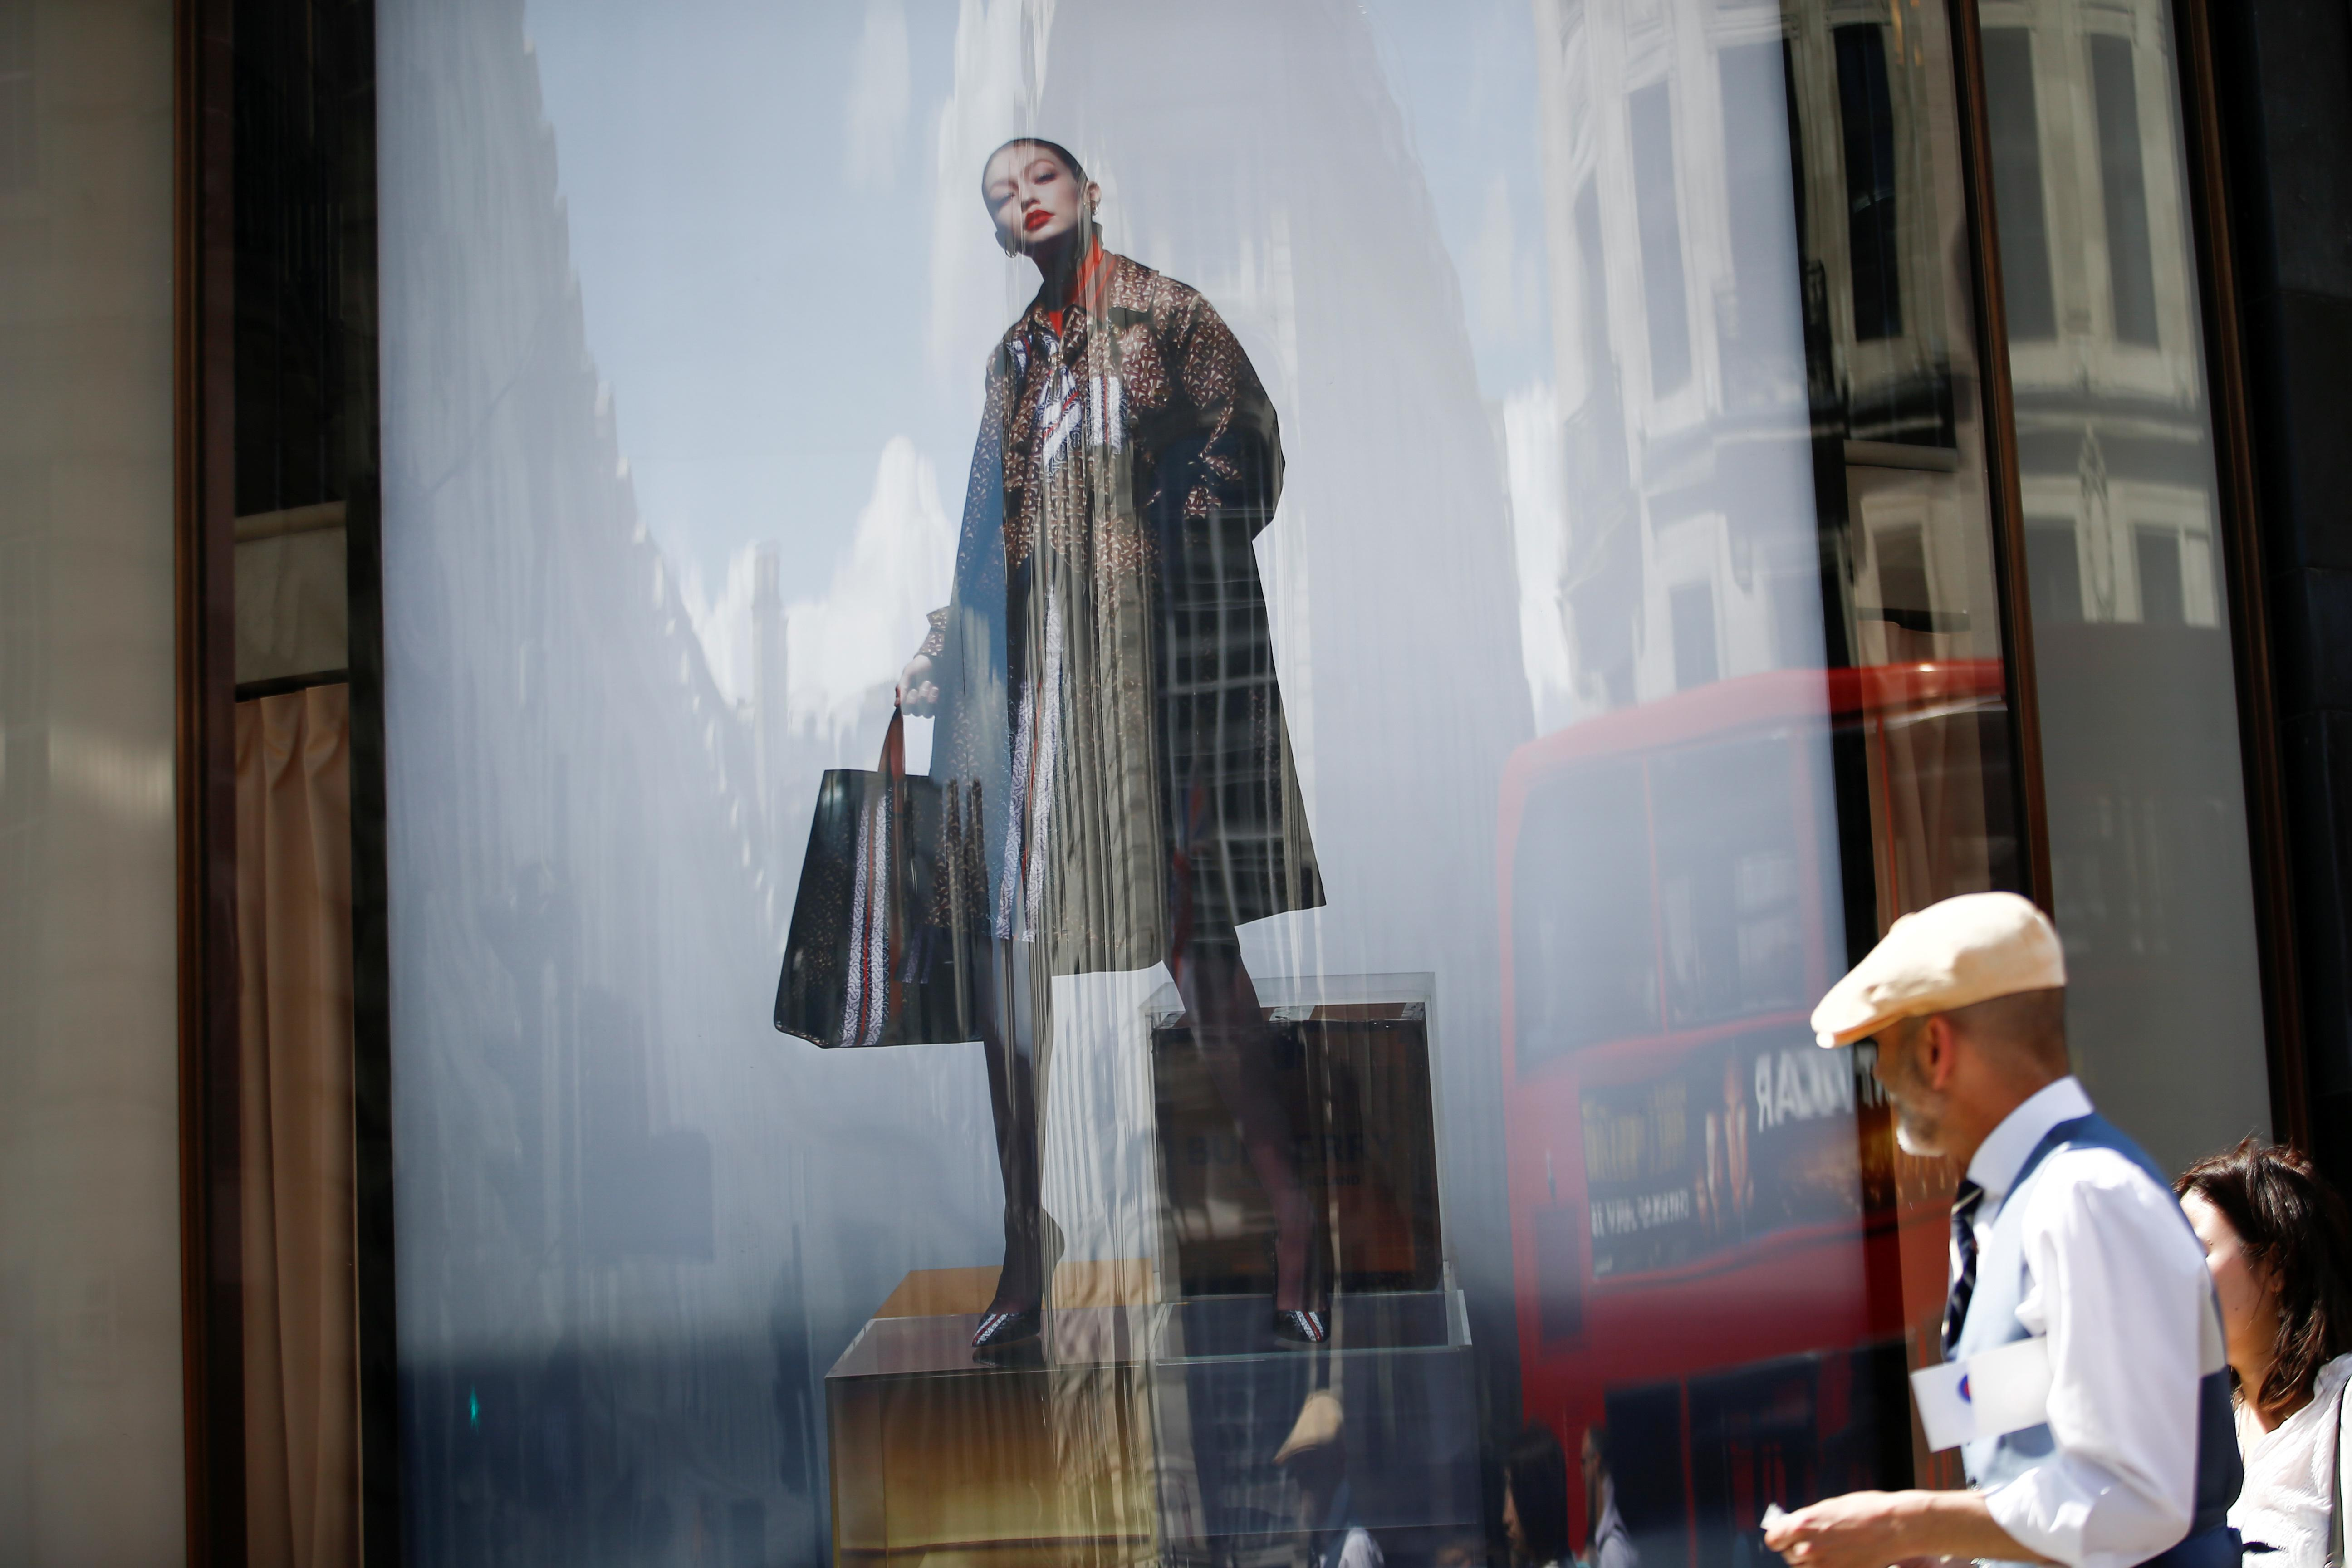 In makeover mode, Burberry bets on new branding to boost sales